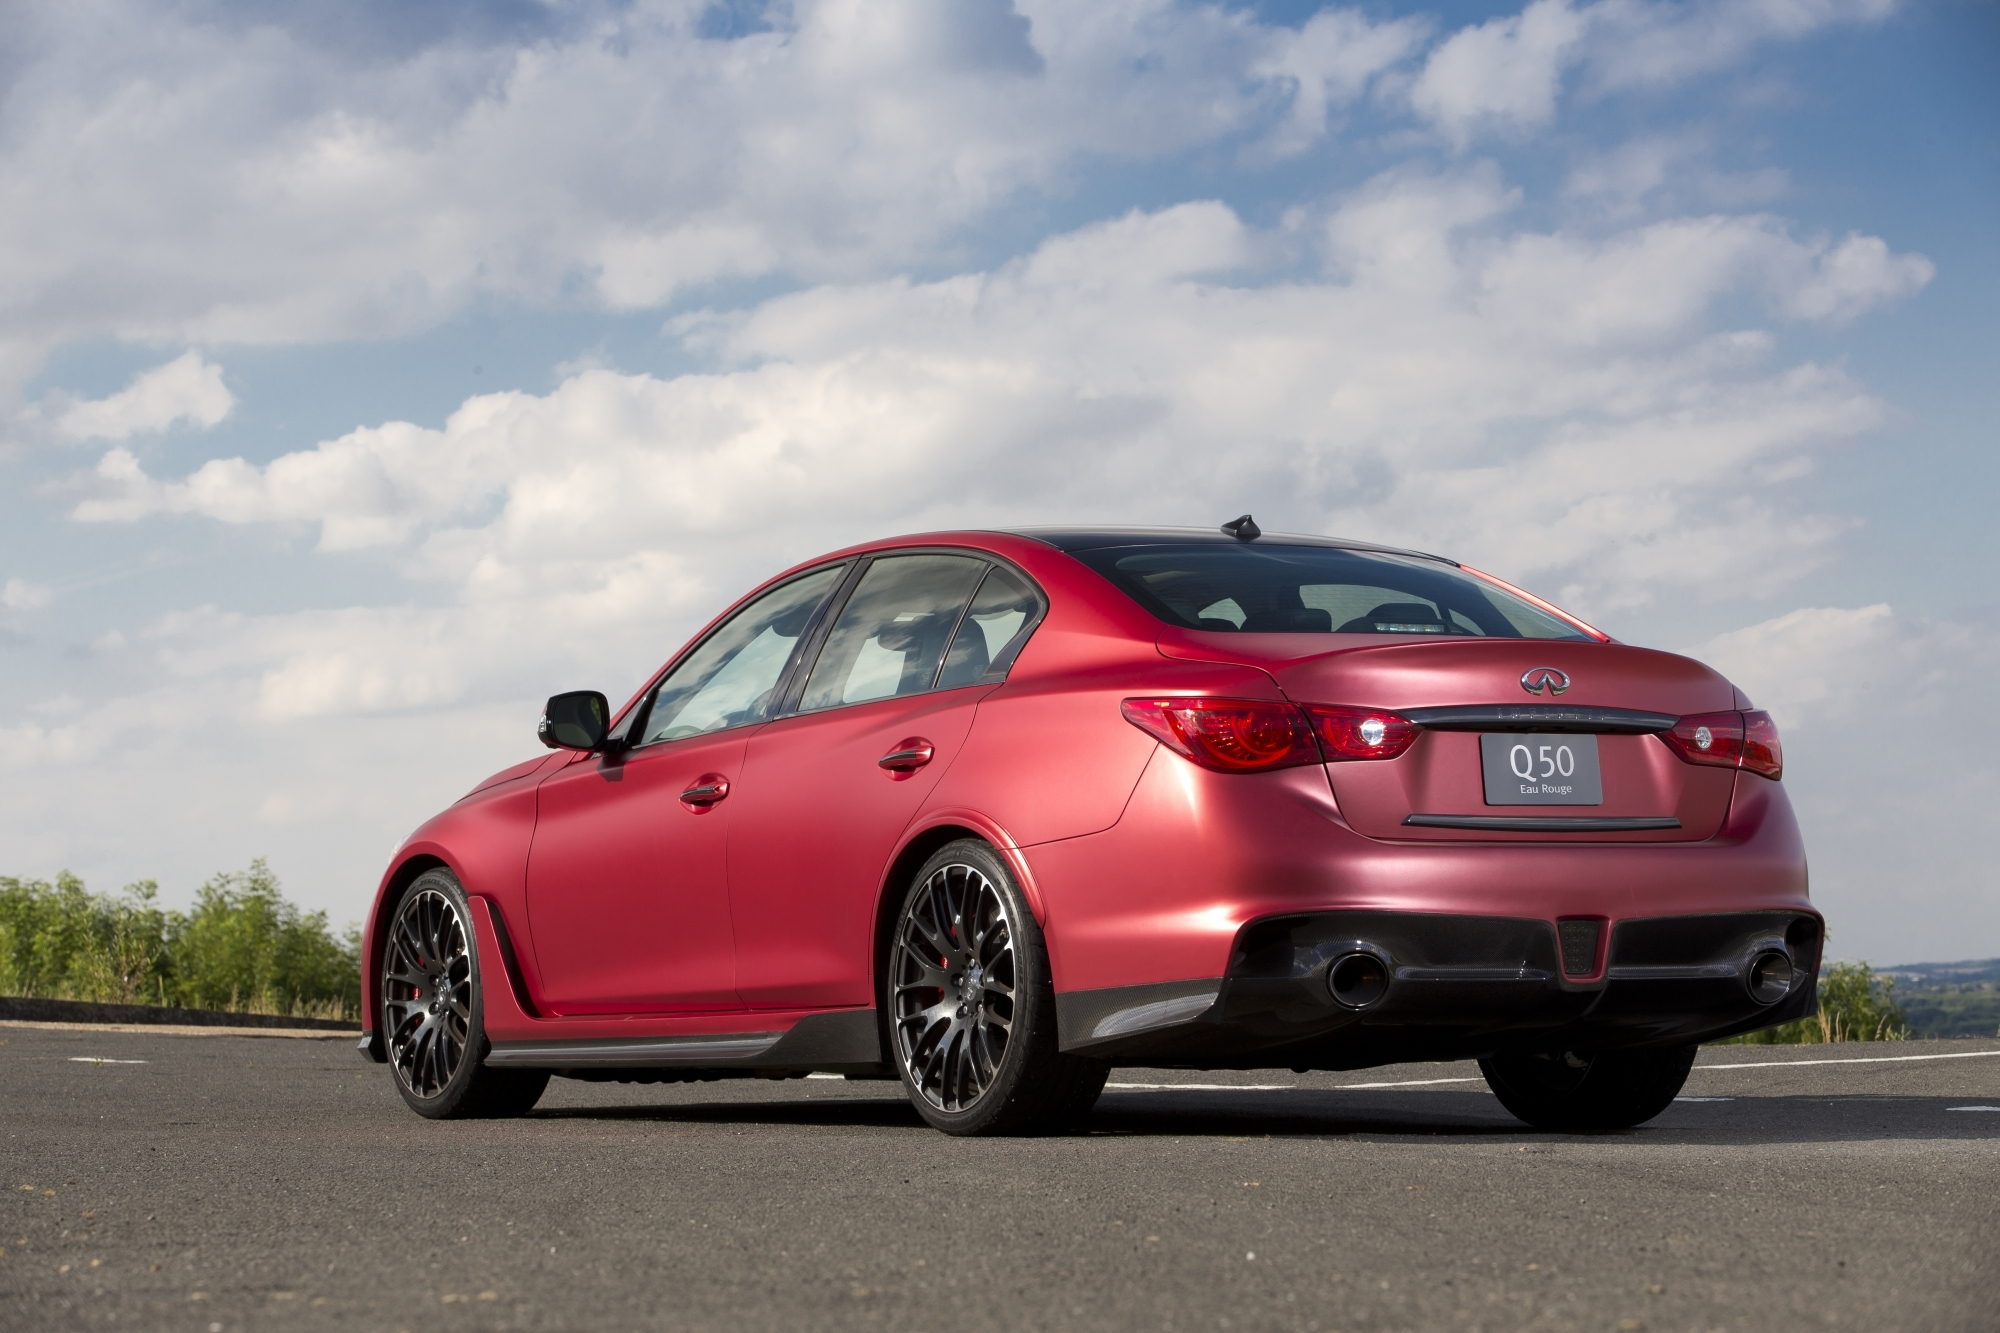 2016 Infiniti Q50 Eau Rouge Prototype First Drive [w/video